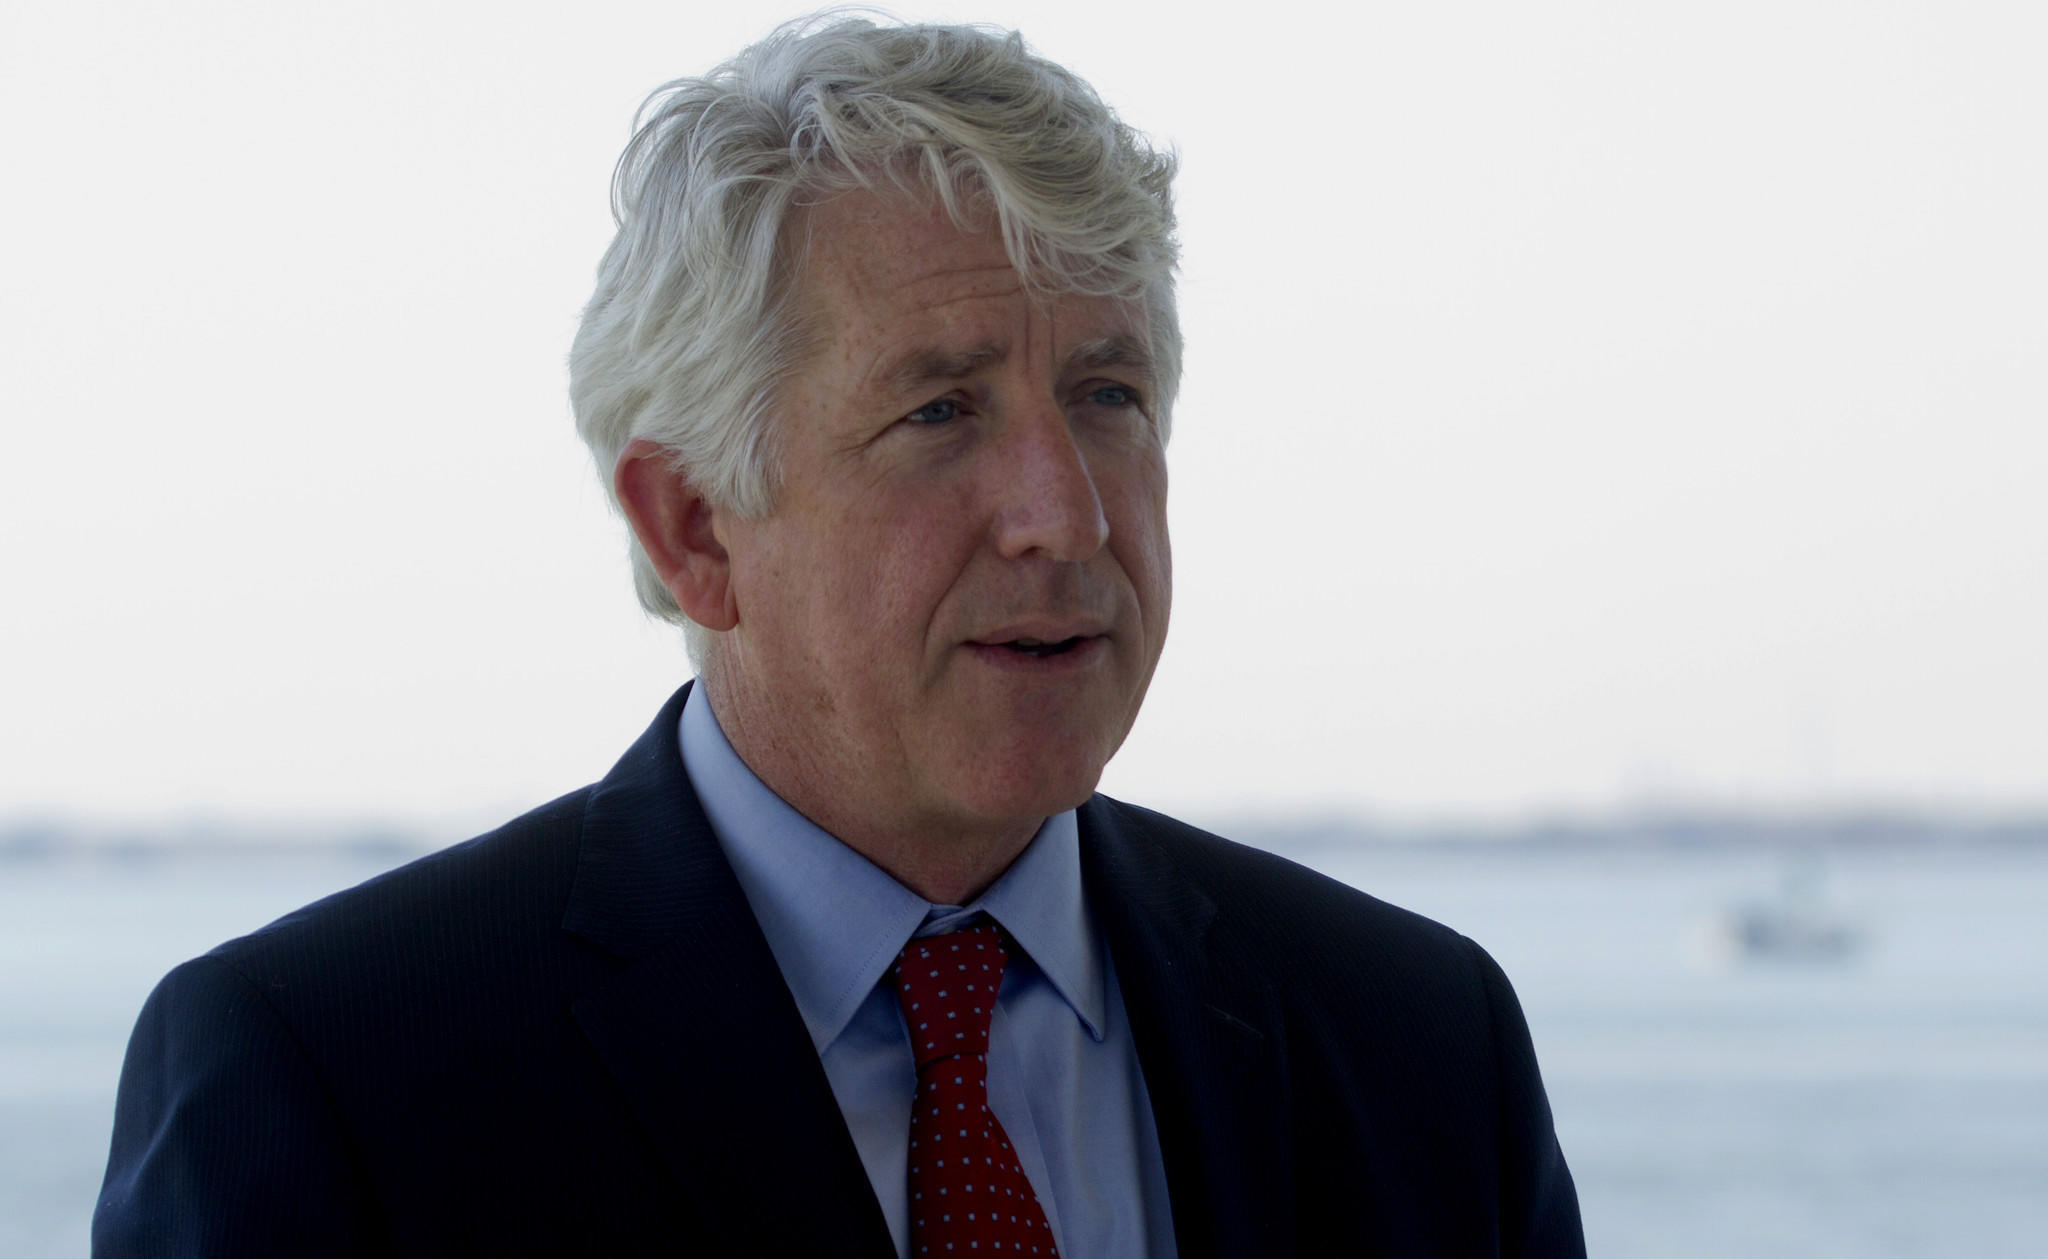 Attorney General Mark R. Herring, seen in April at a press conference at Fort Monroe, has announced a new program to help local jails statewide integrate inmates back into society after serving their sentences.